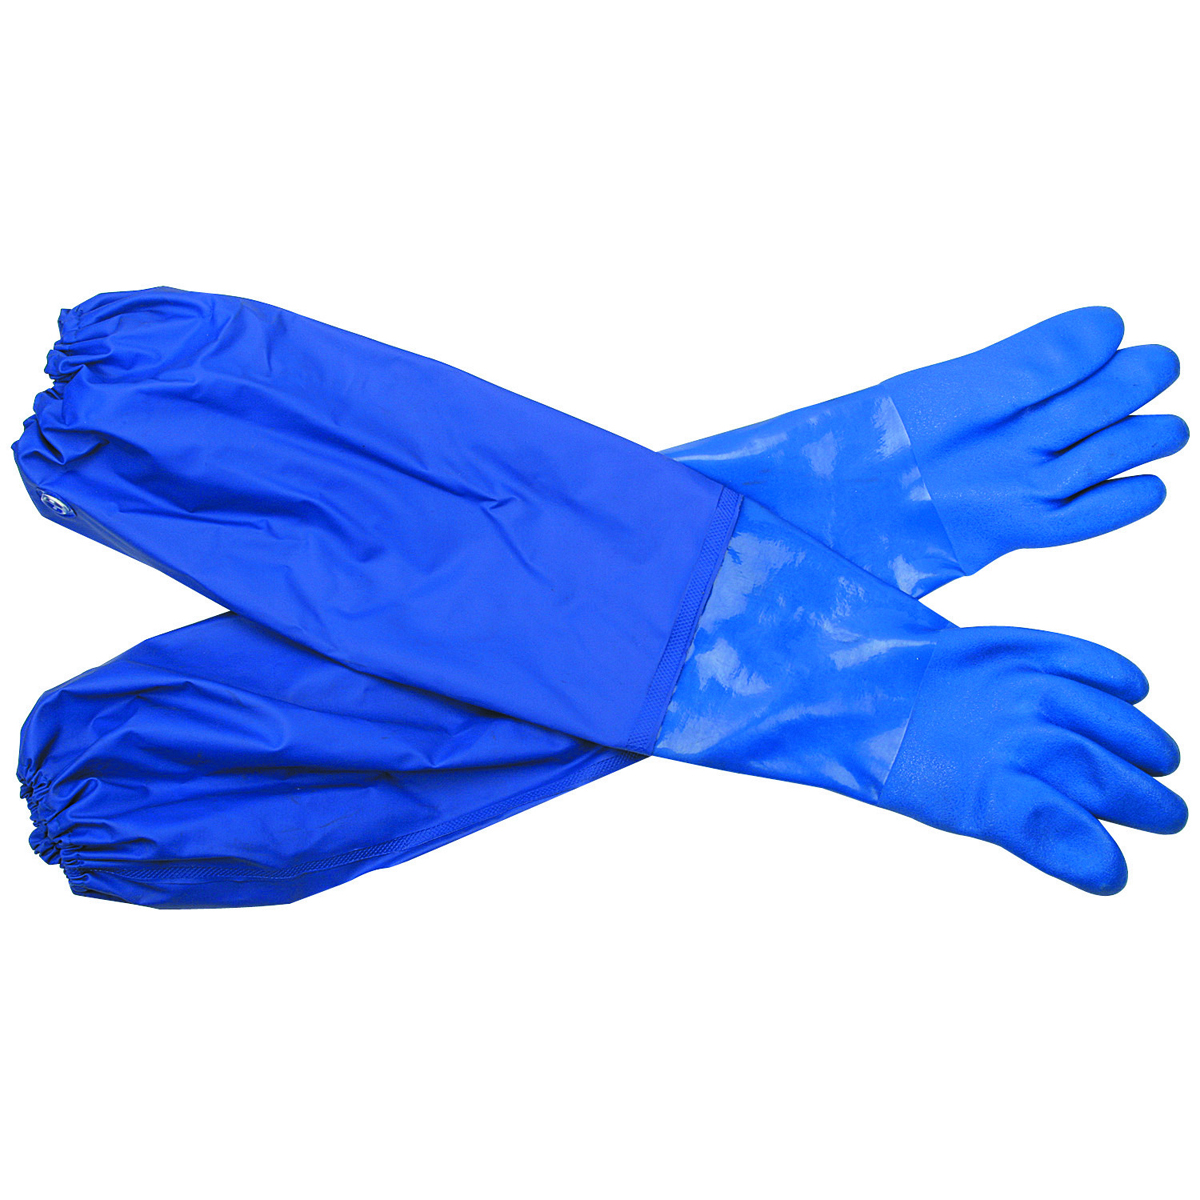 Oil Resistant Gloves >> Oil Resistant Pvc Long Cuff Gloves